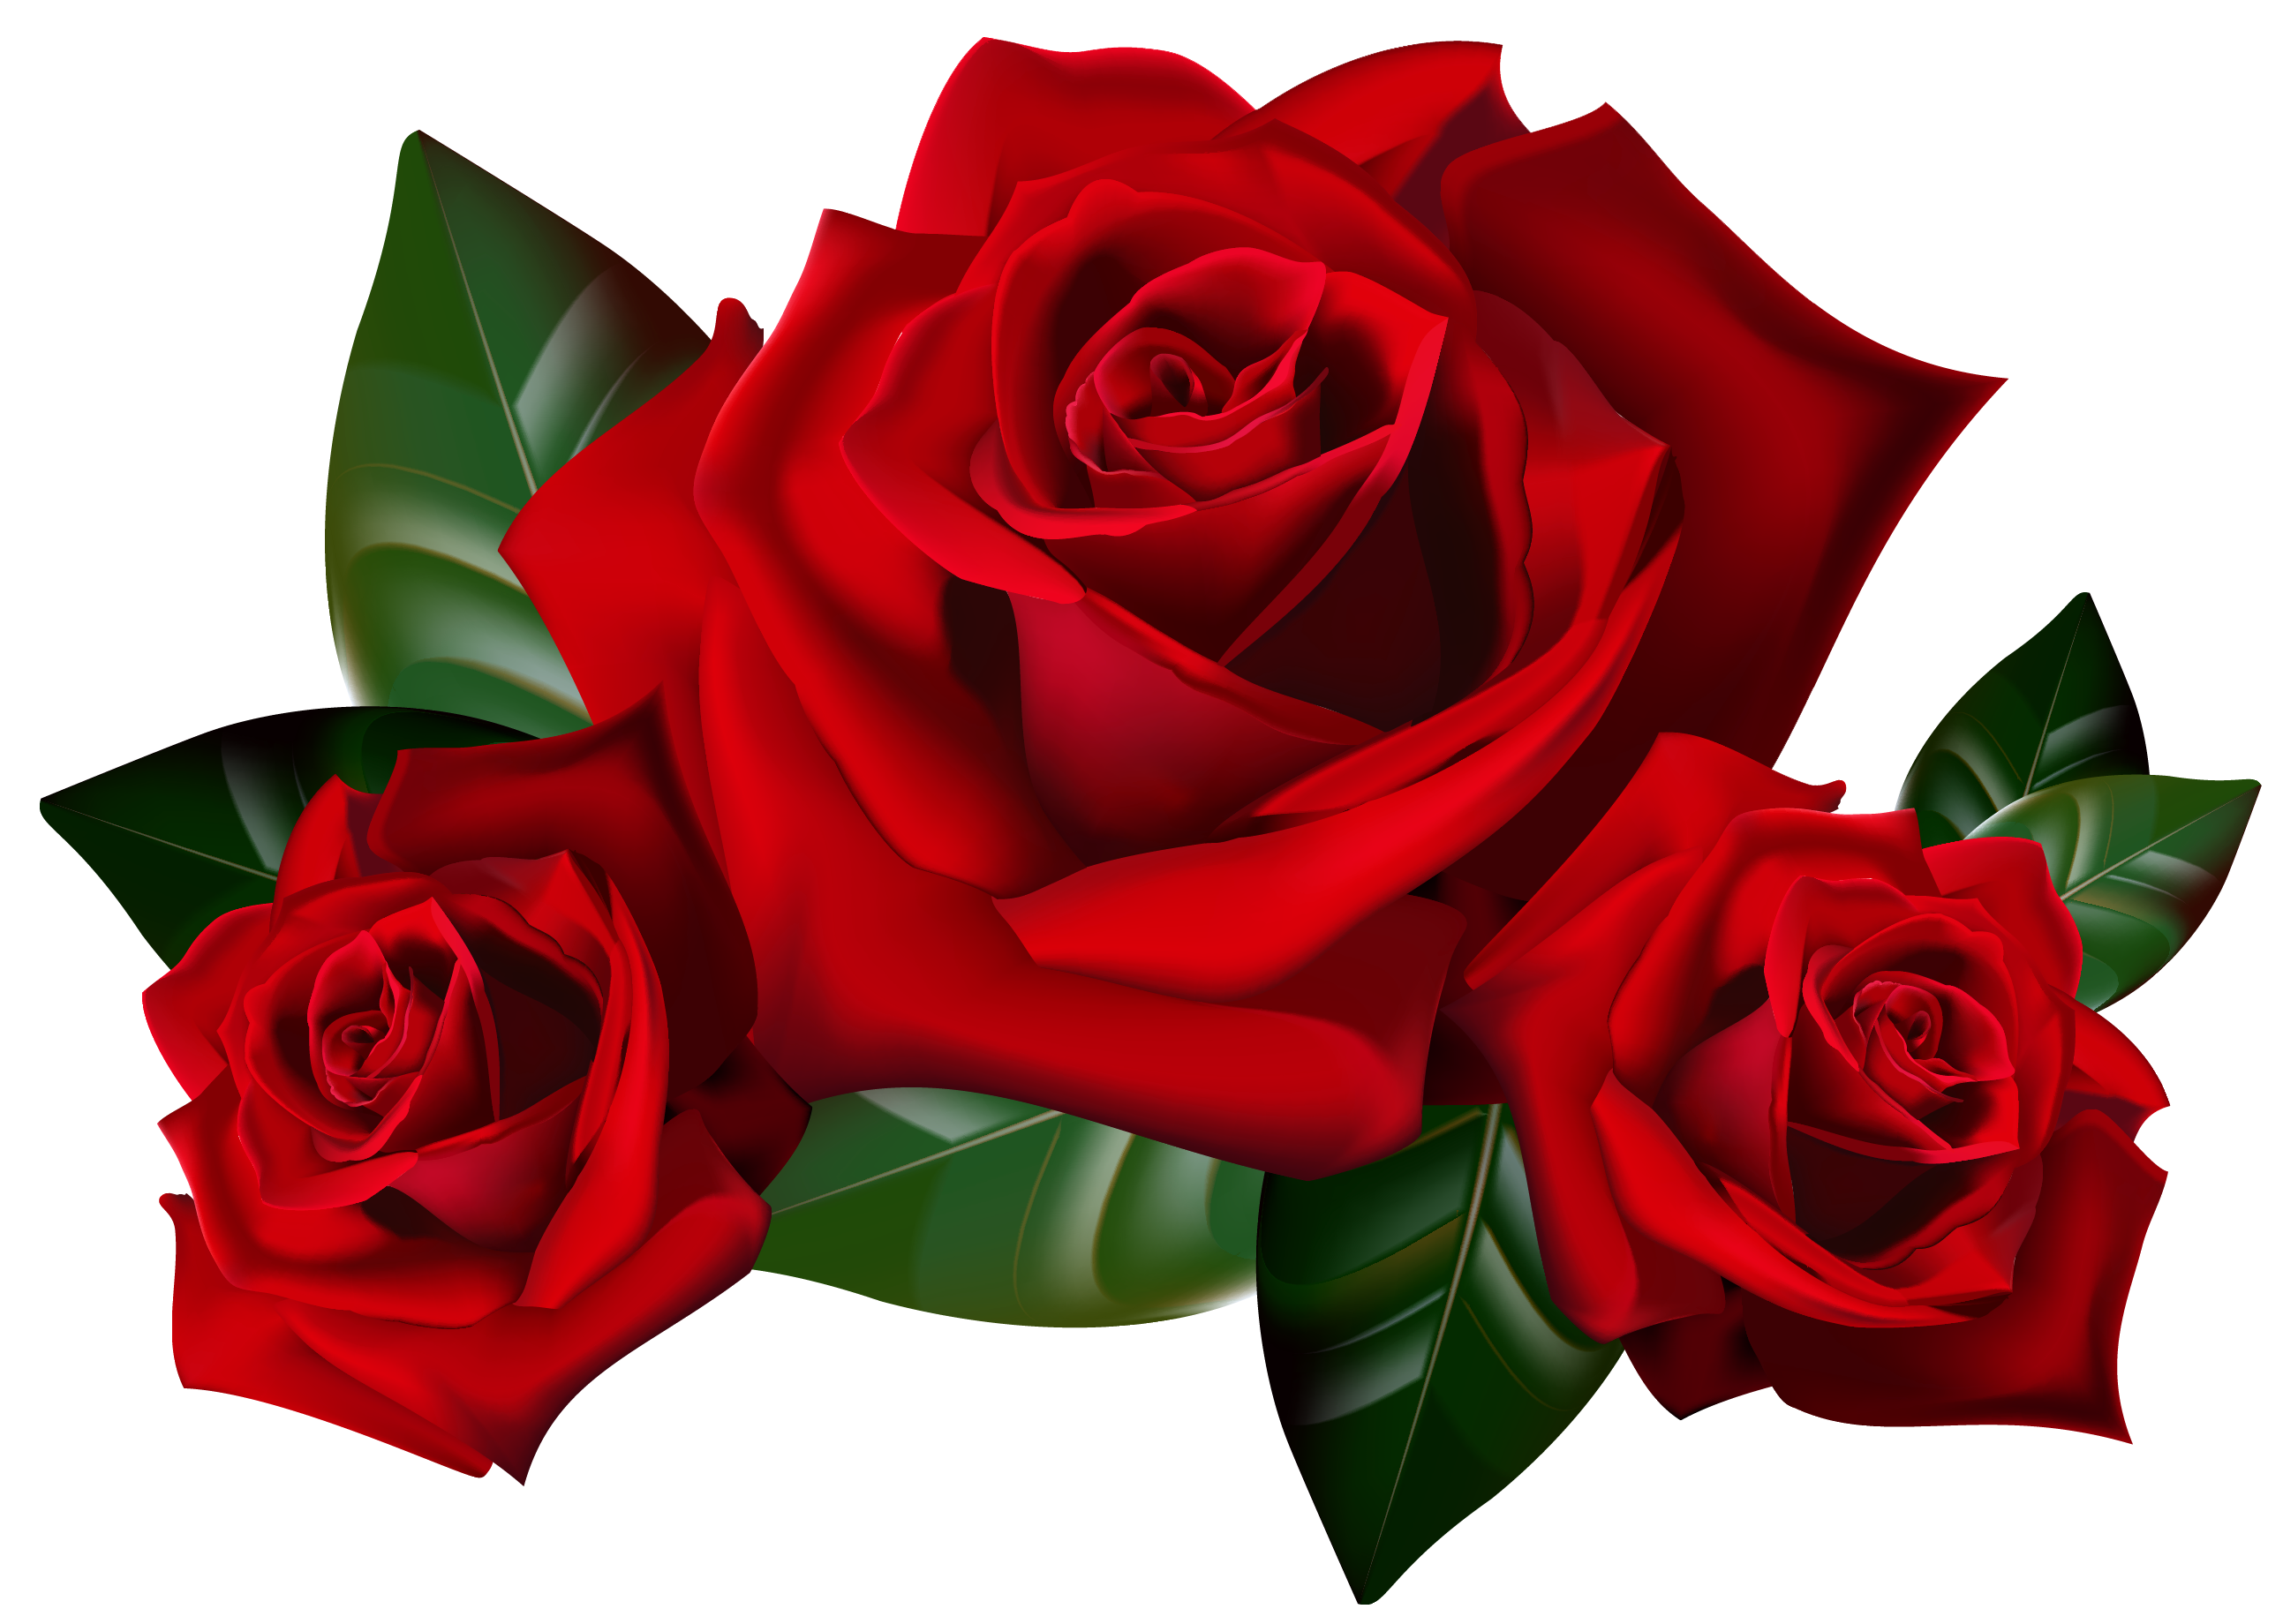 Red Flower clipart valentine rose #8